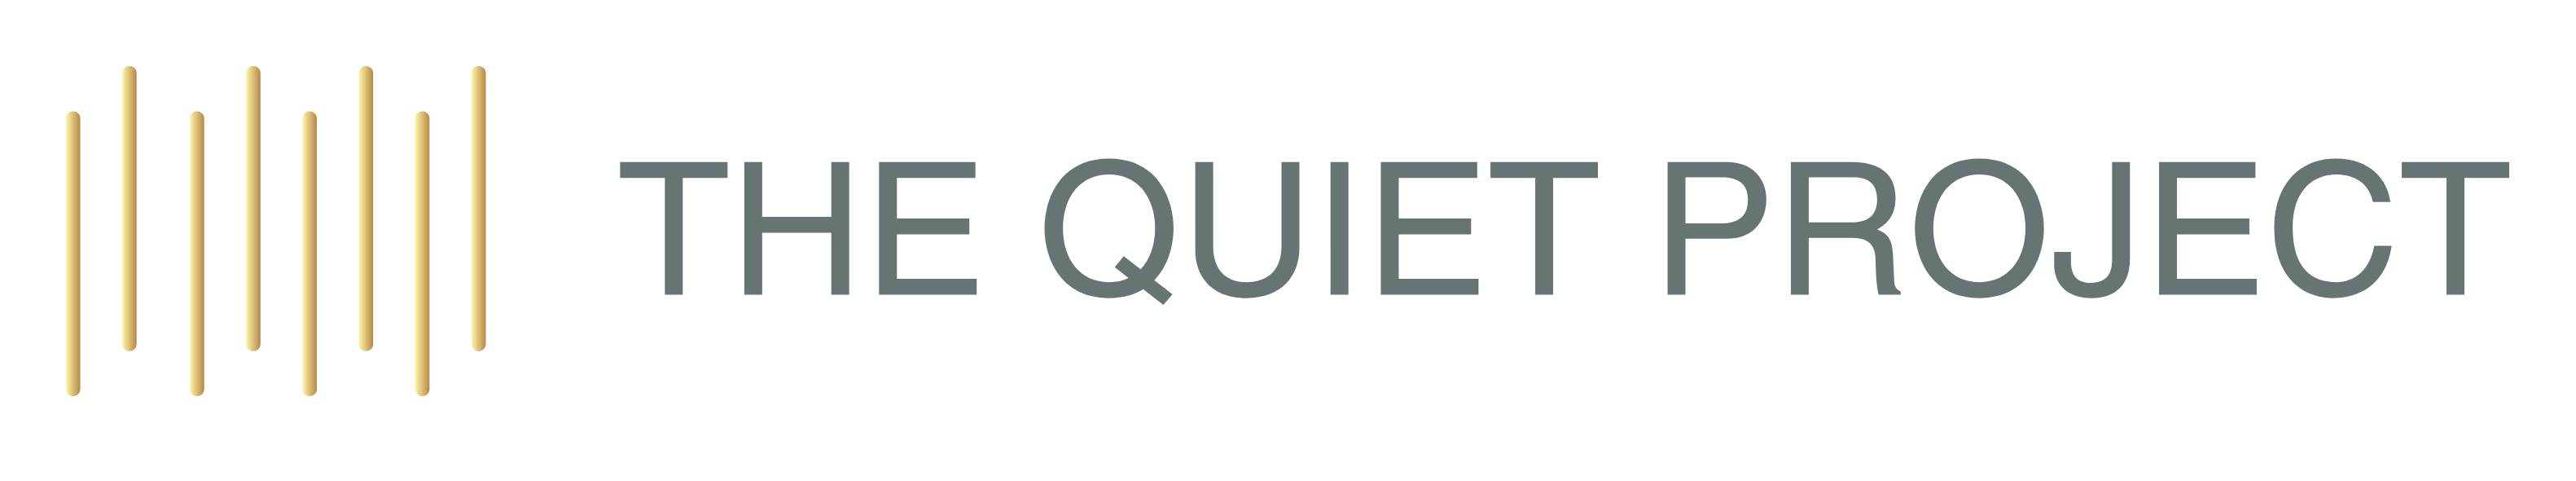 The Quiet Project Logo